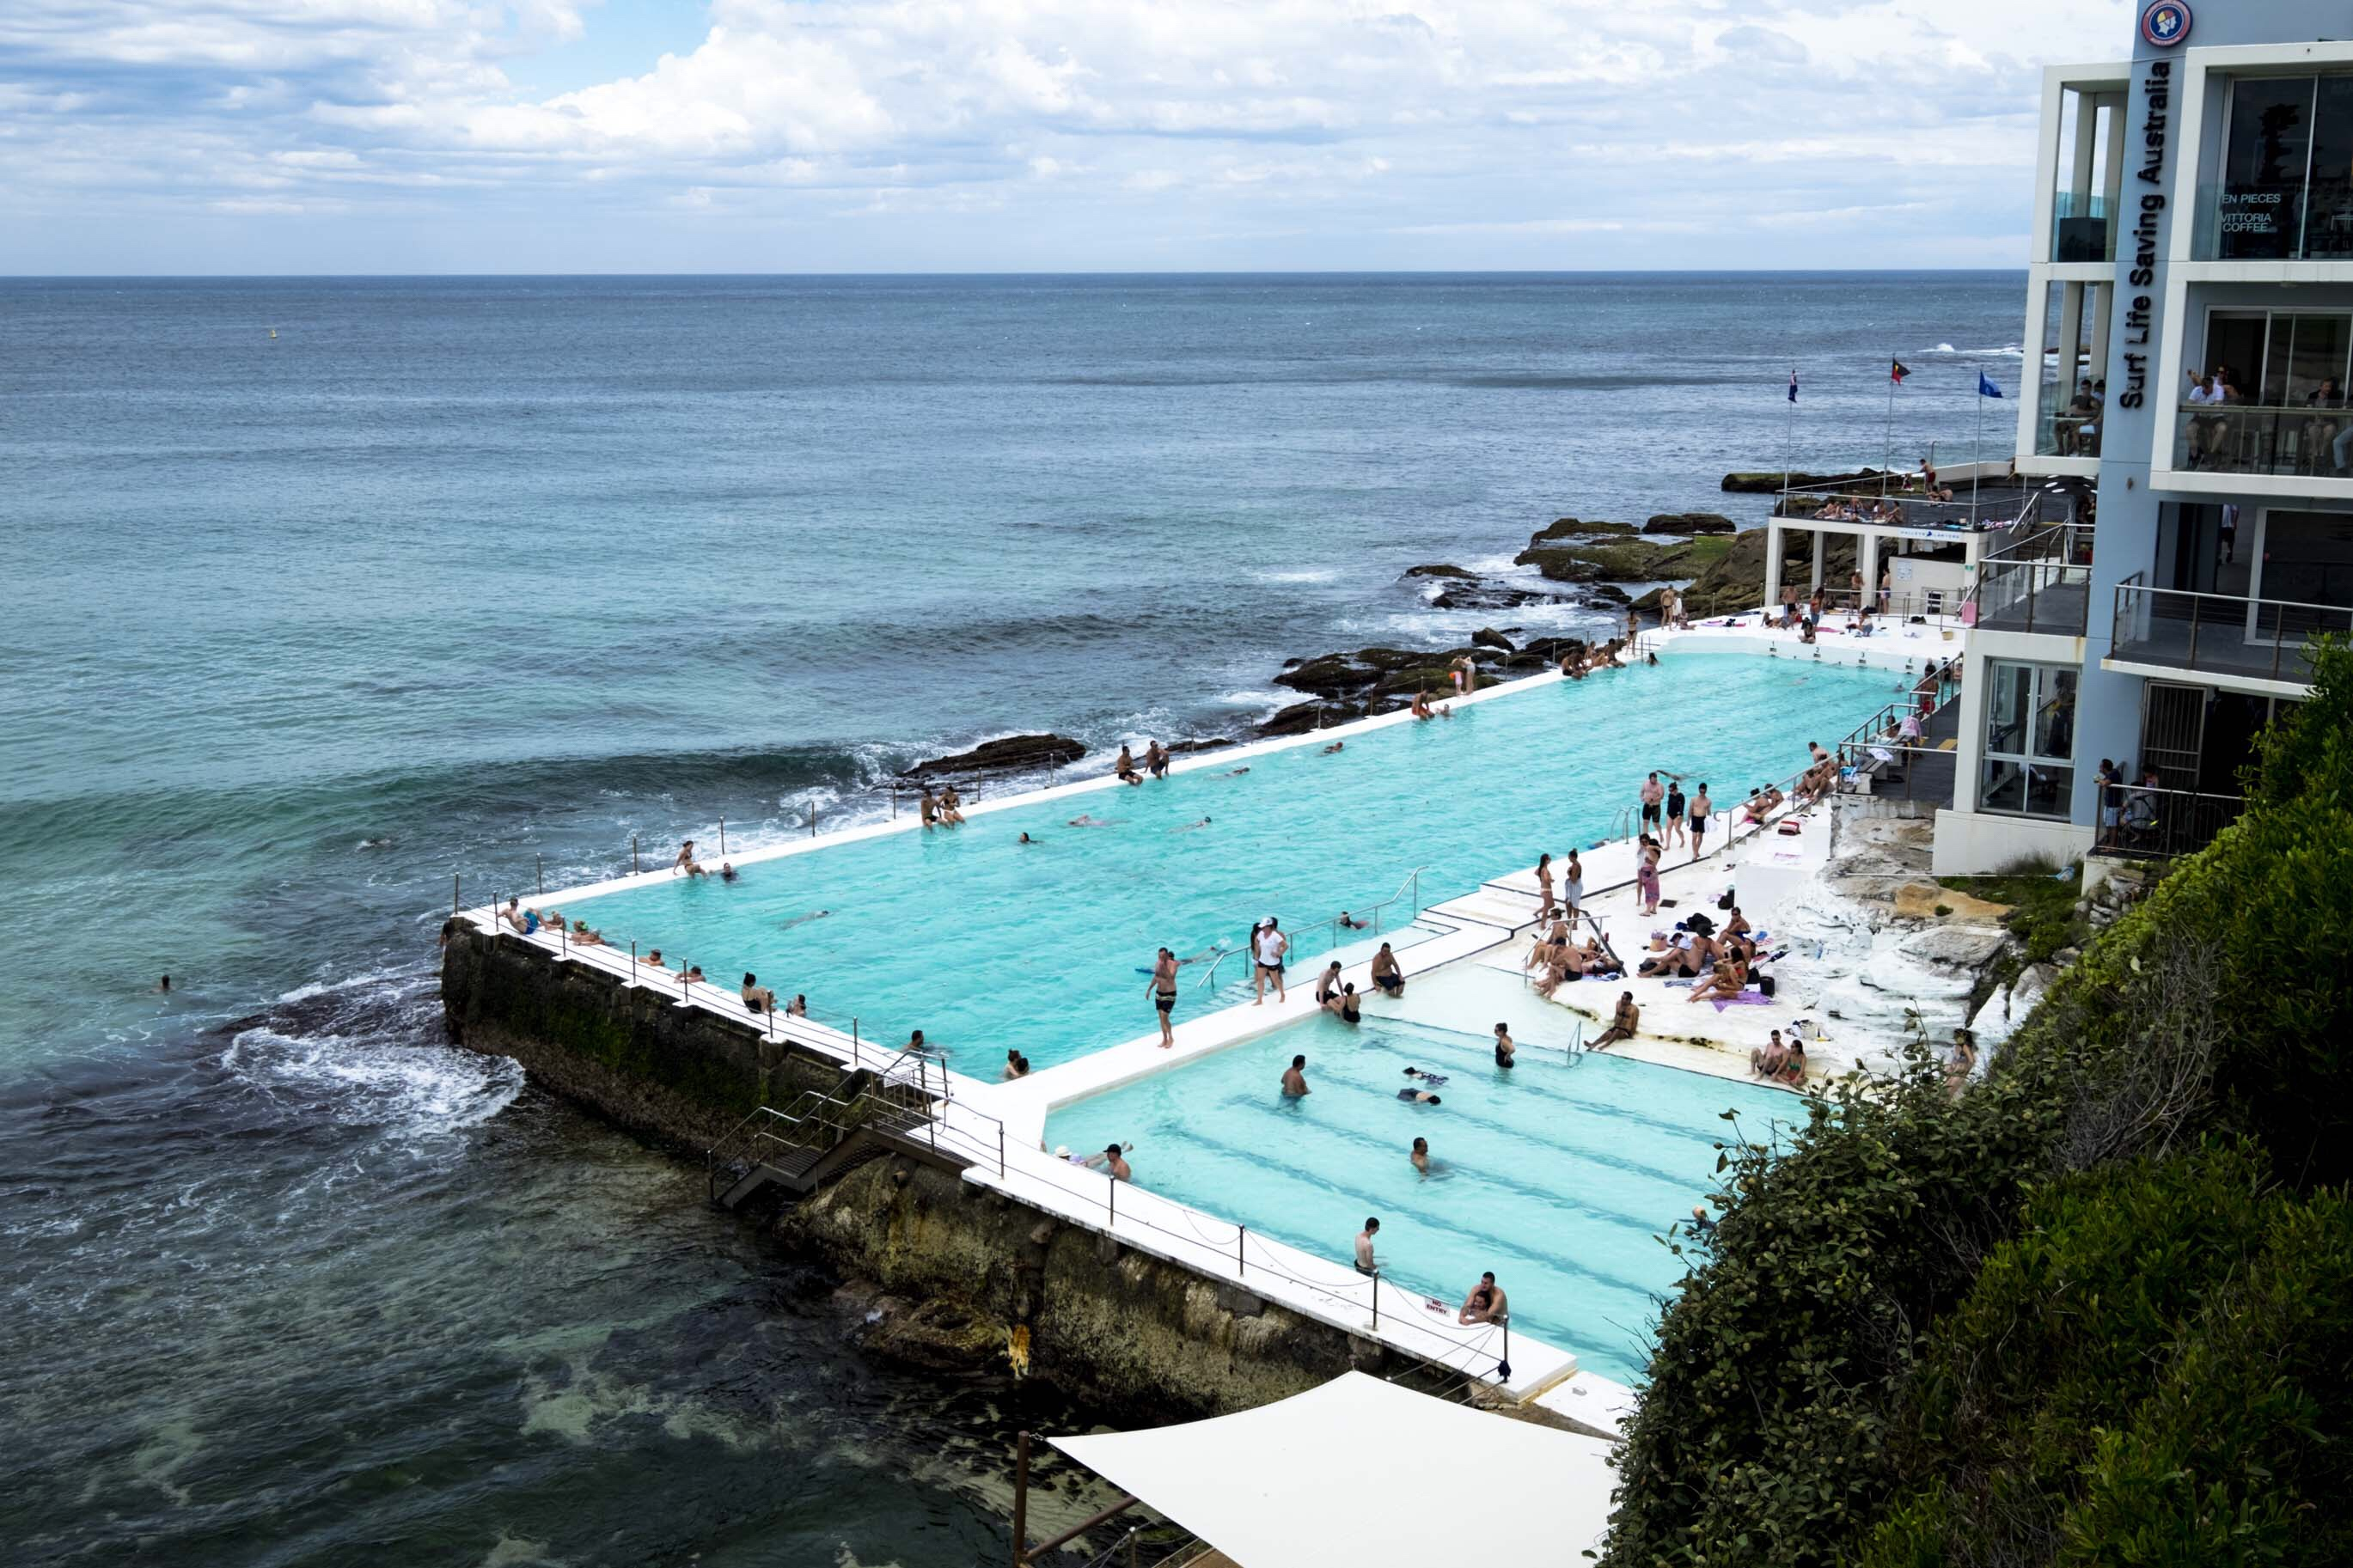 Australie: bondi beach pool